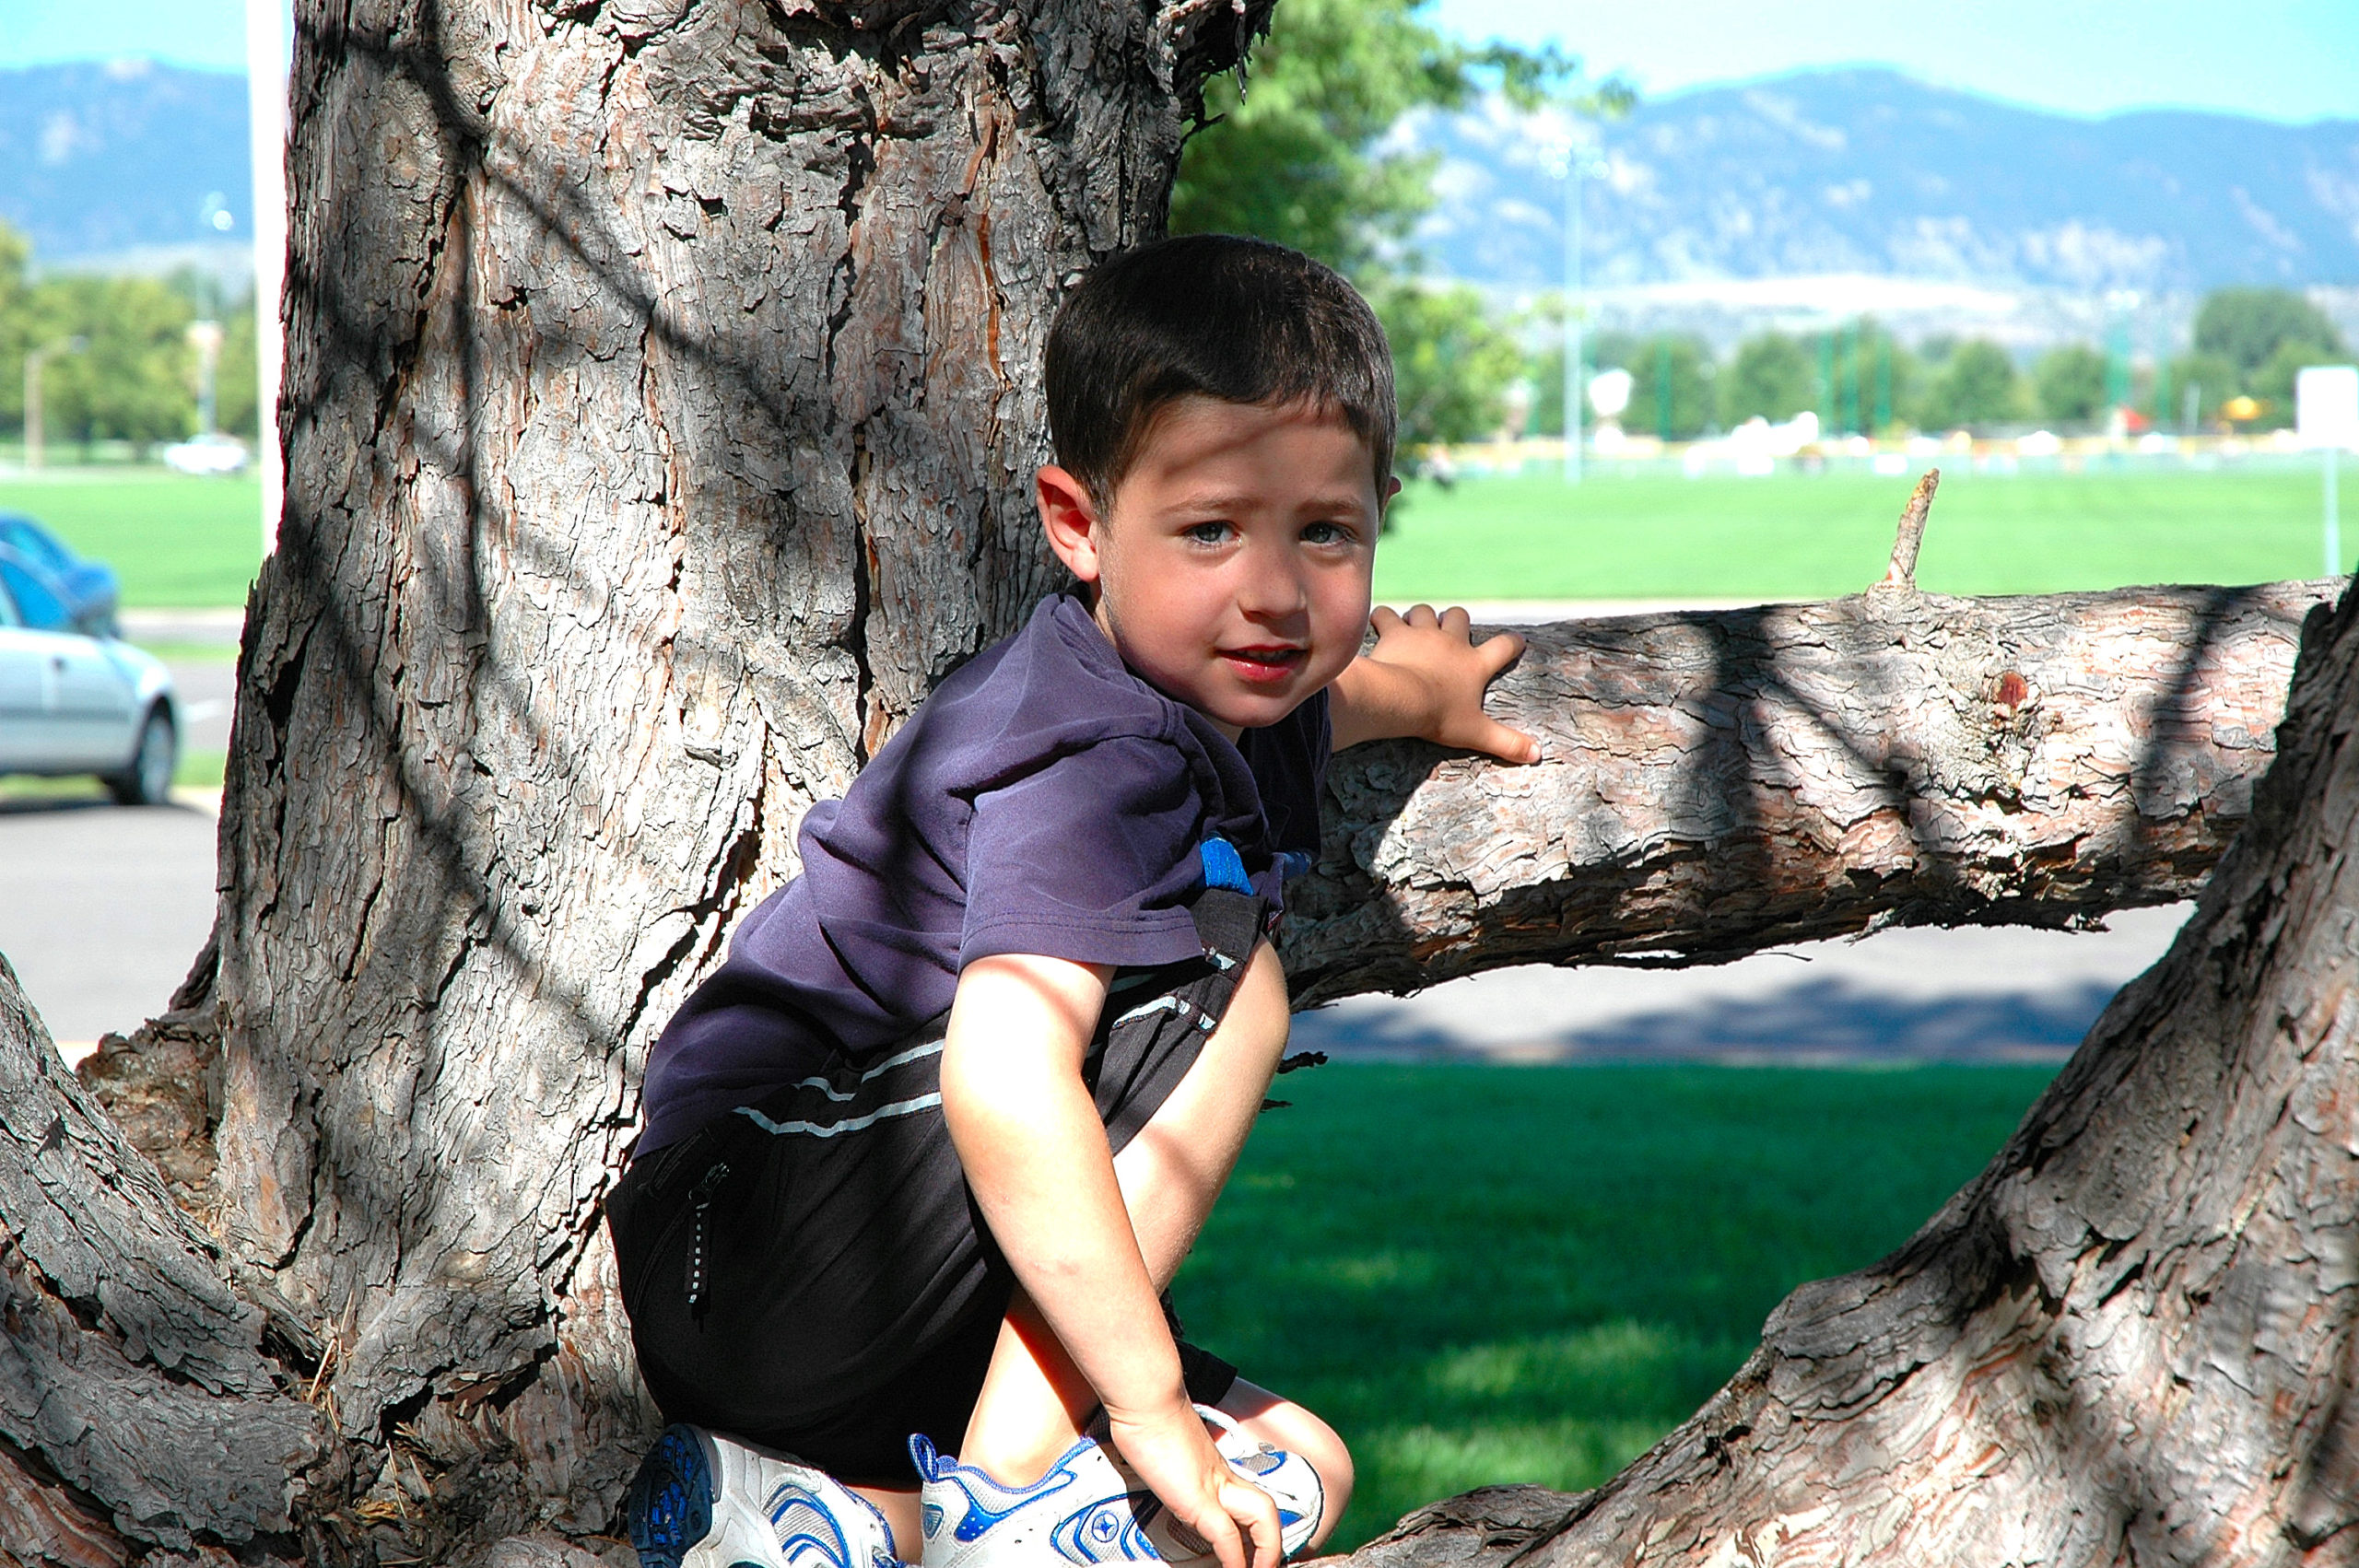 Nevan Doig watching dad from a tree at the cricket at CSU